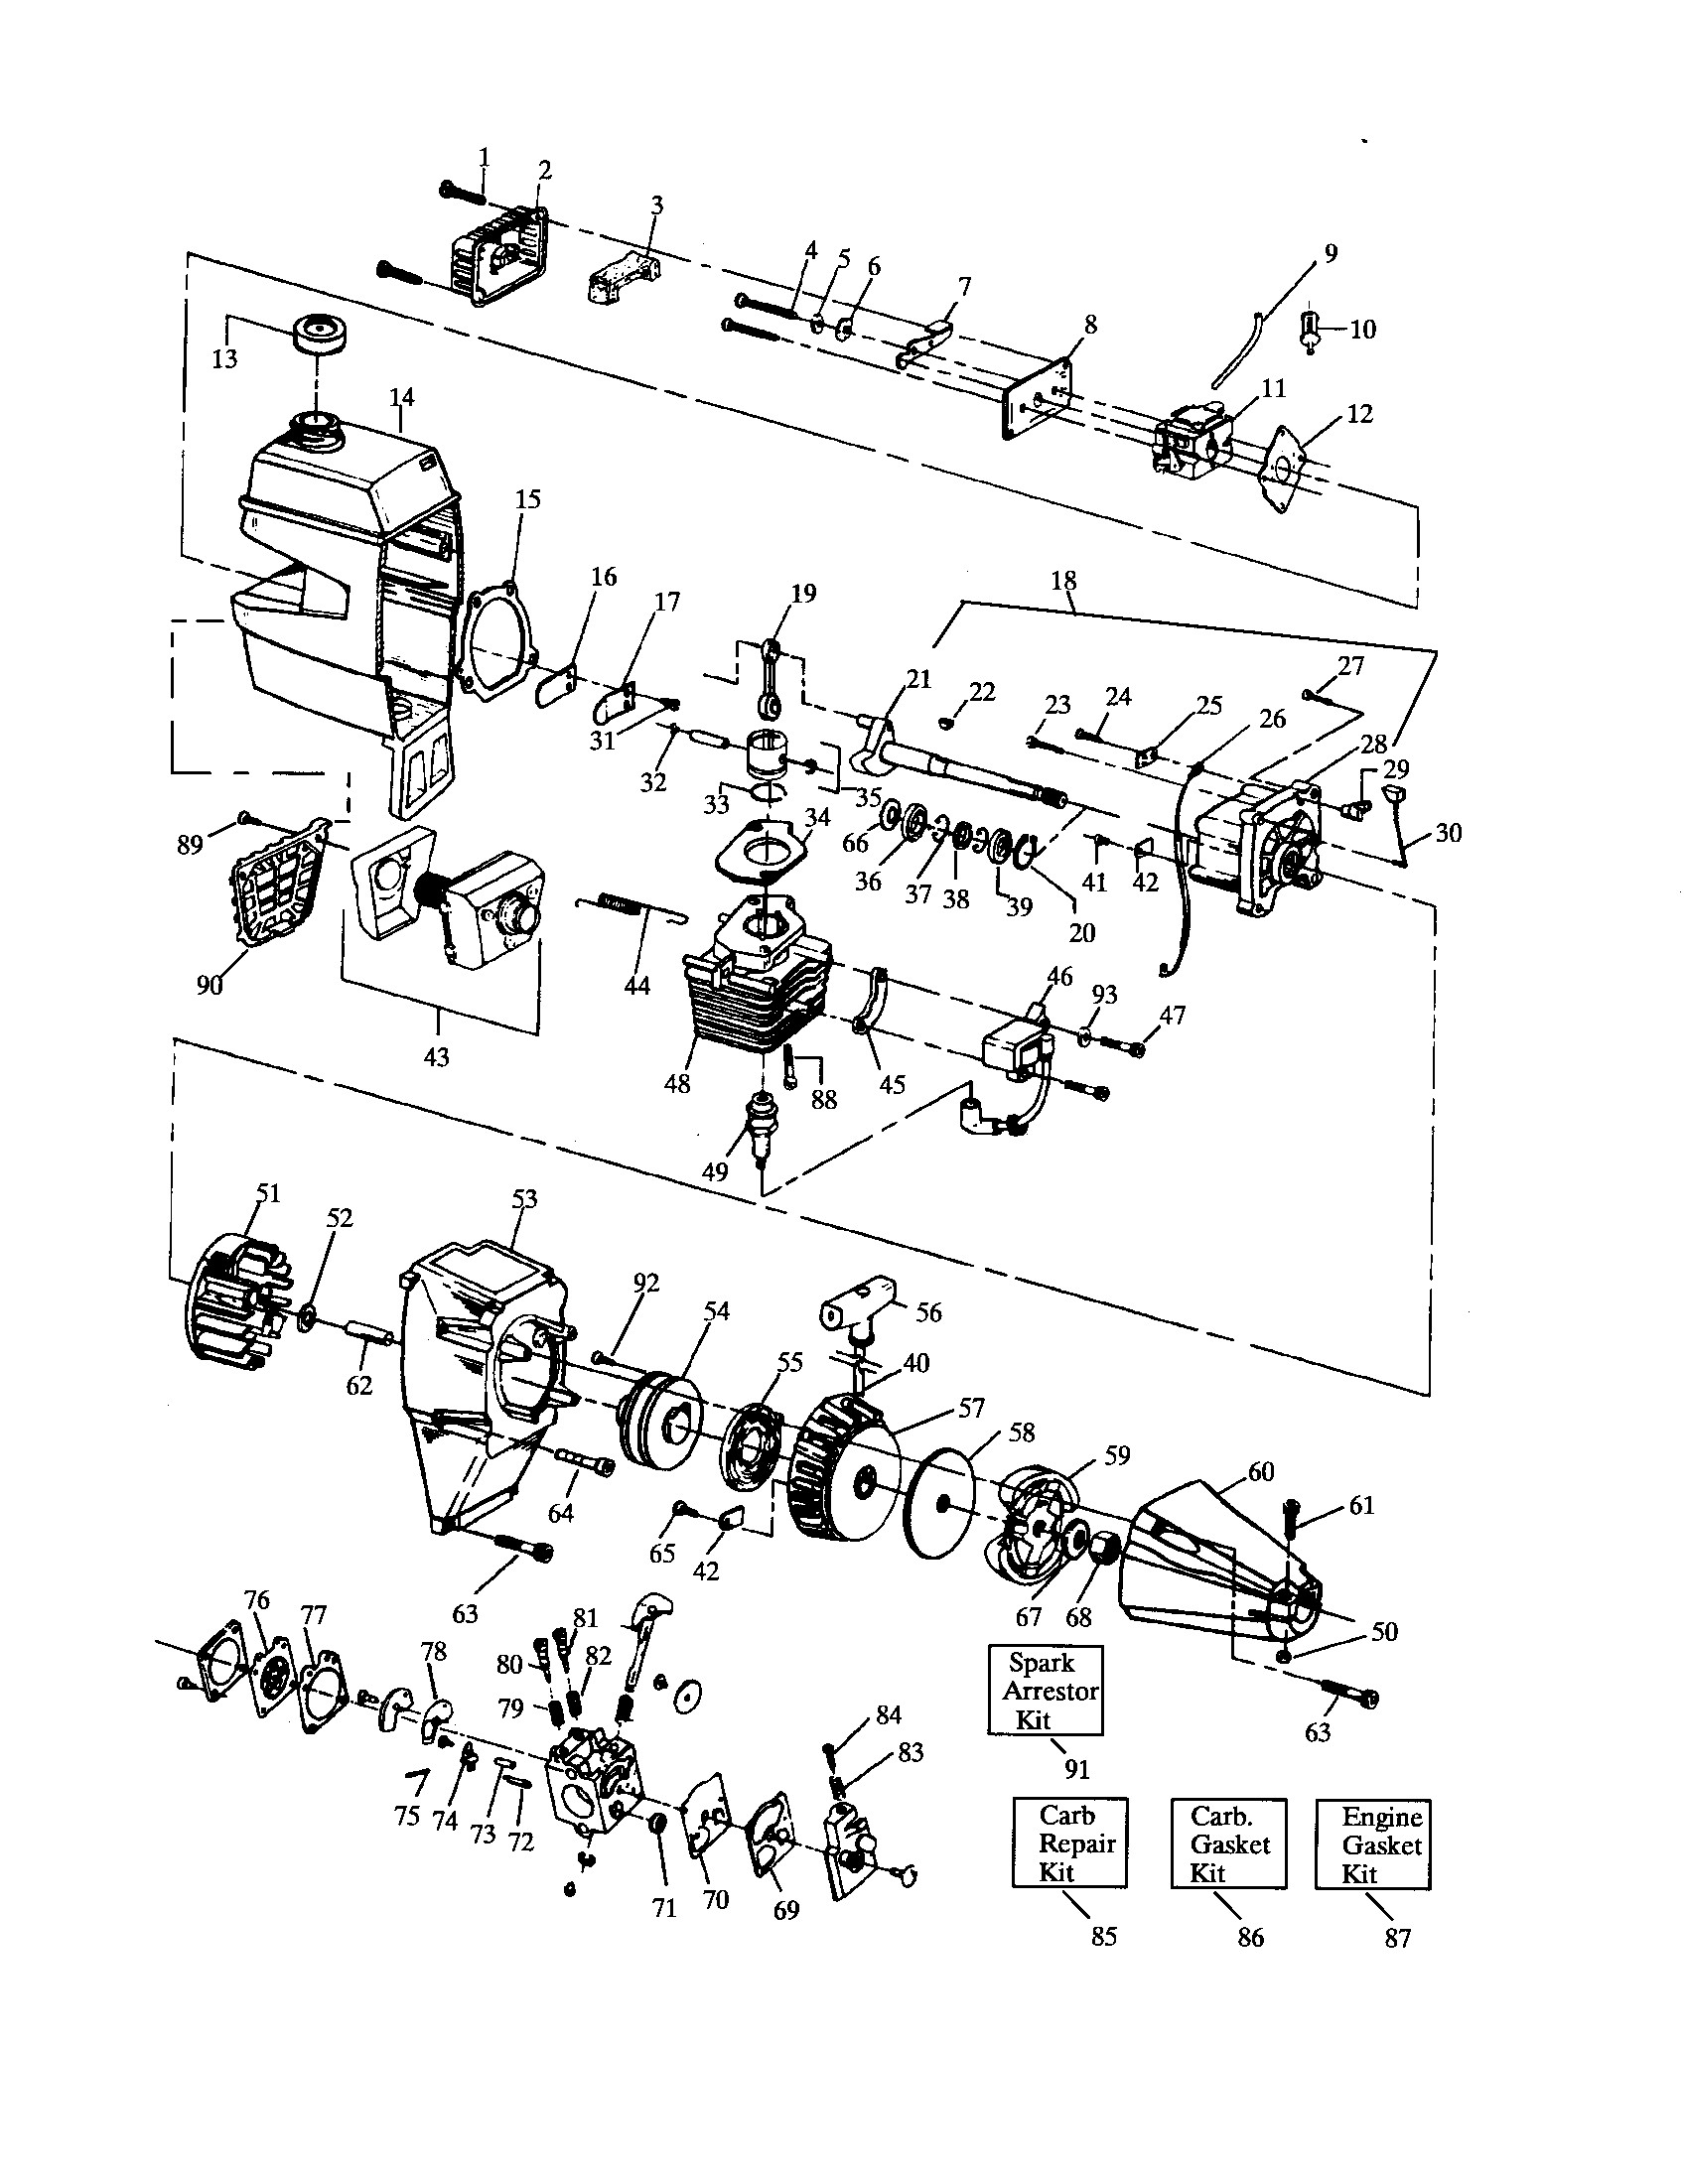 For 917250560 Craftsman Lawn Tractor Wiring Diagram